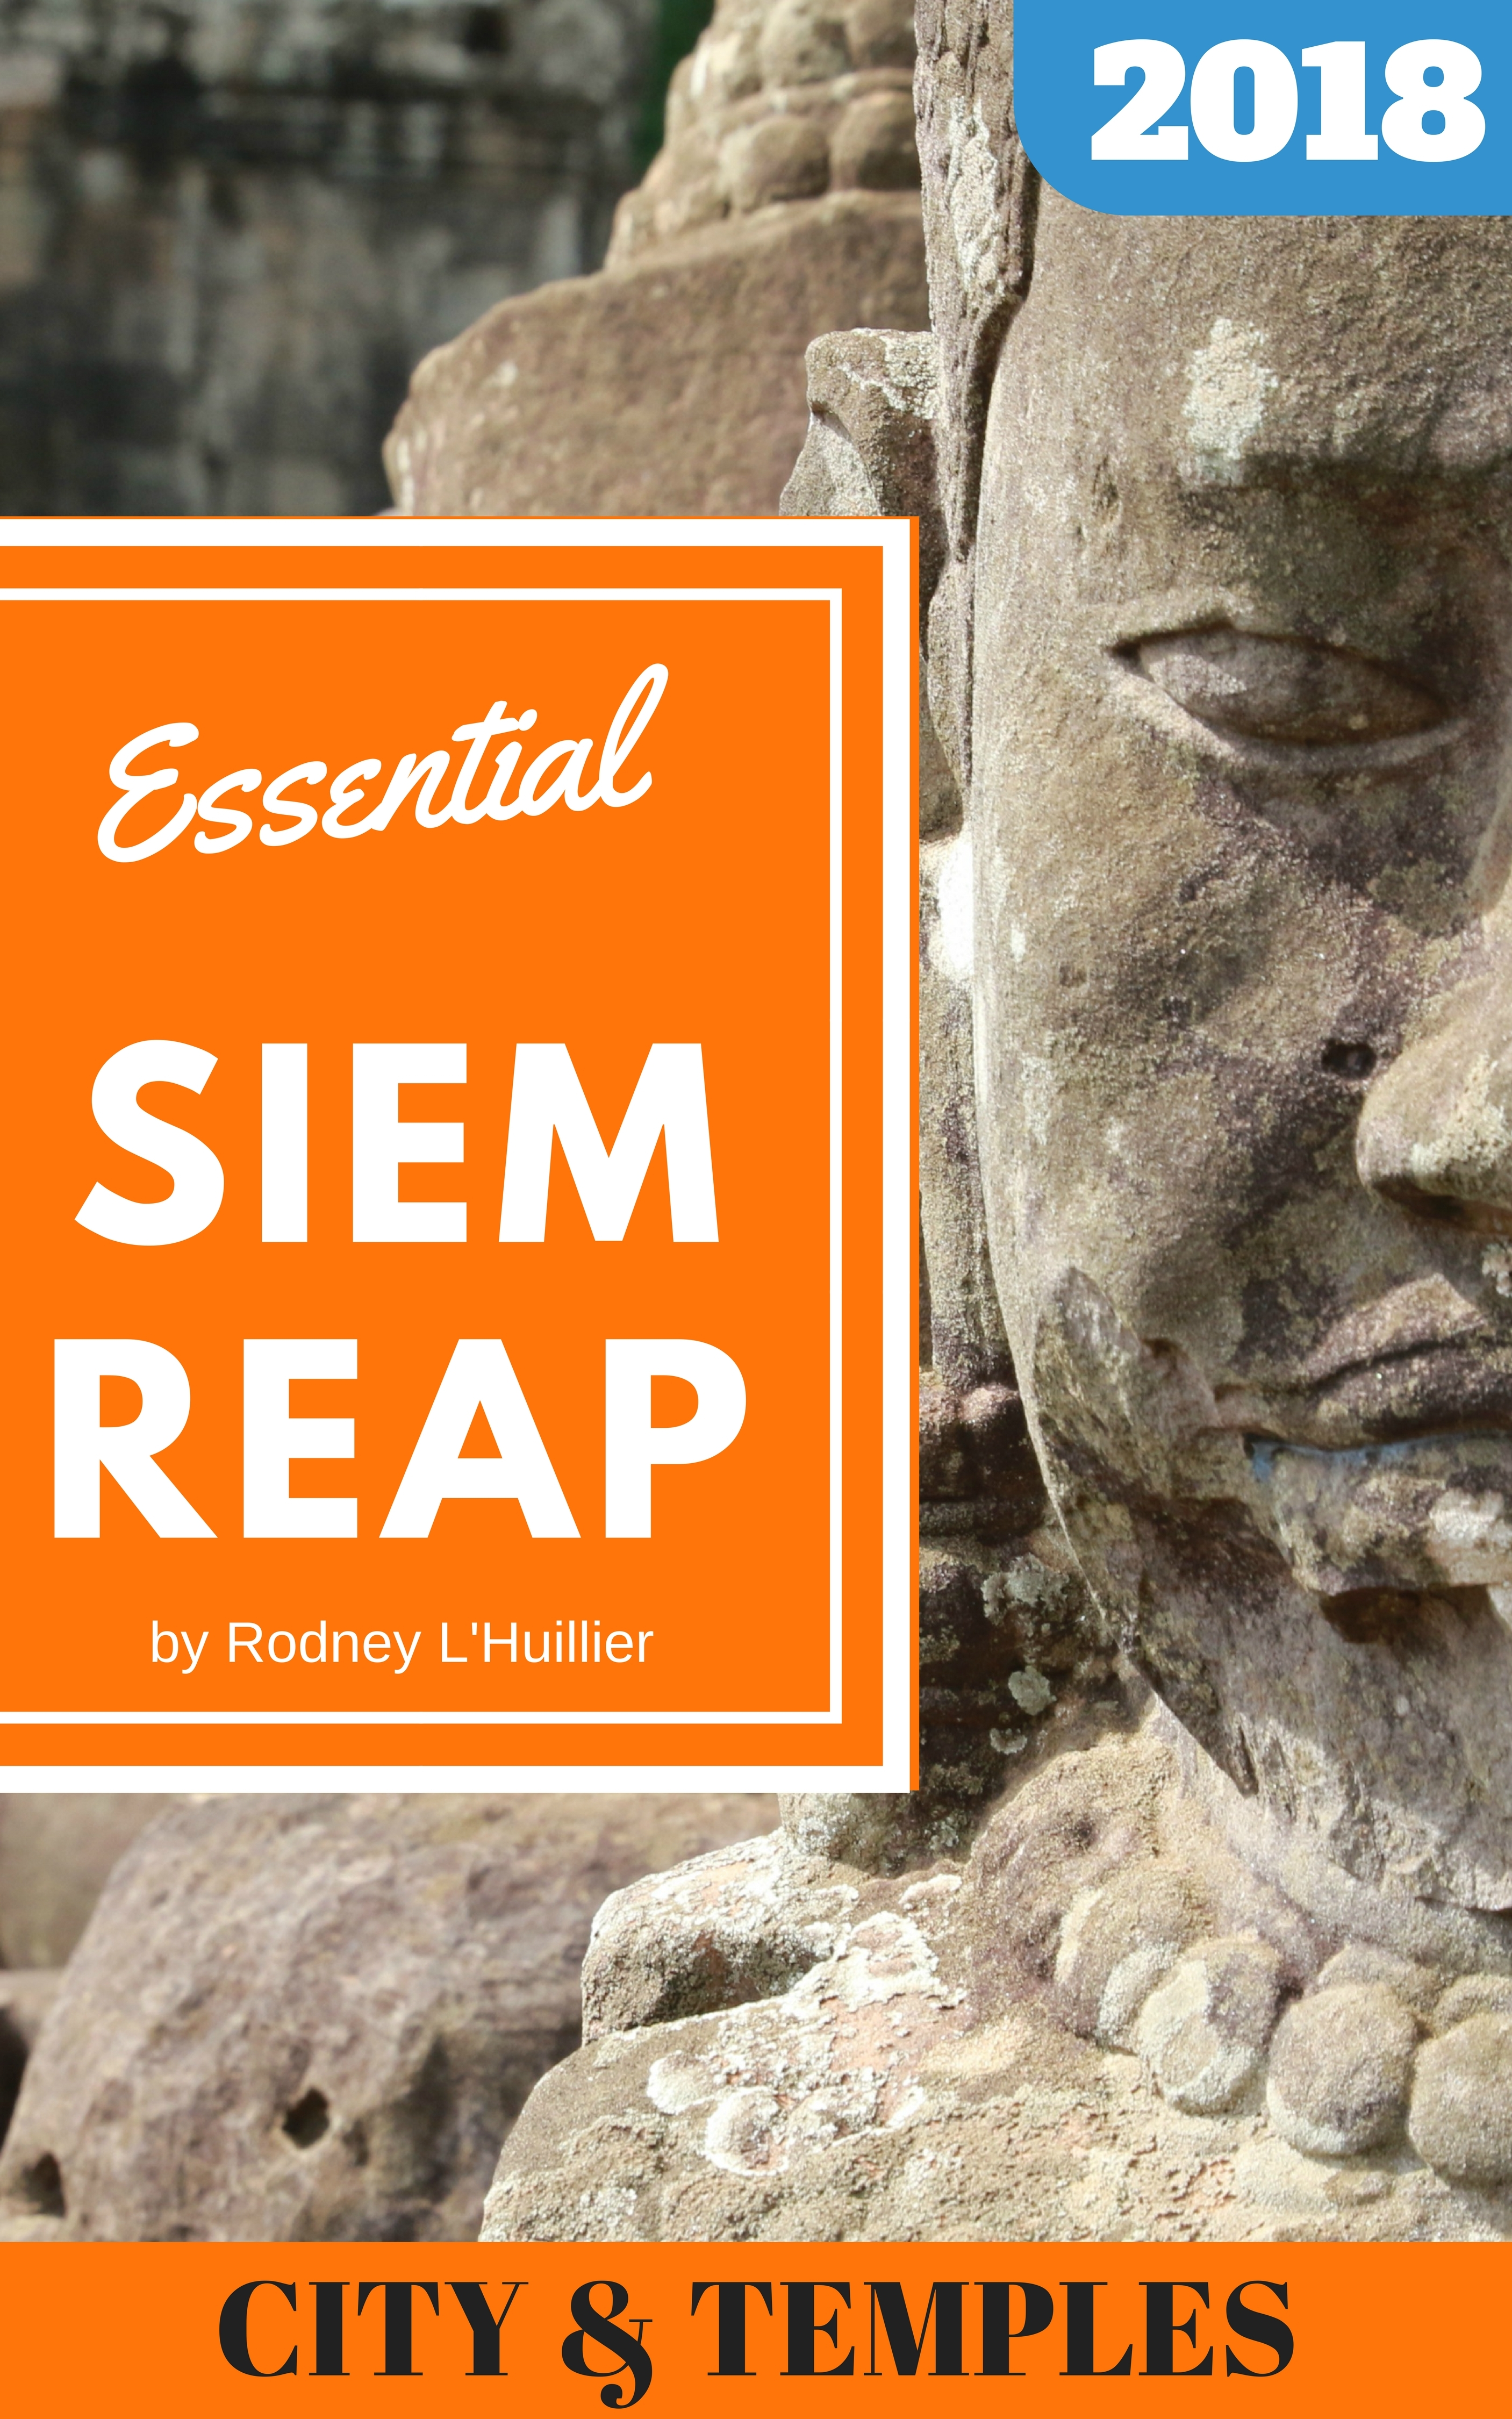 Essential Siem Reap: The Must Carry Guide to the City and Temples of Angkor